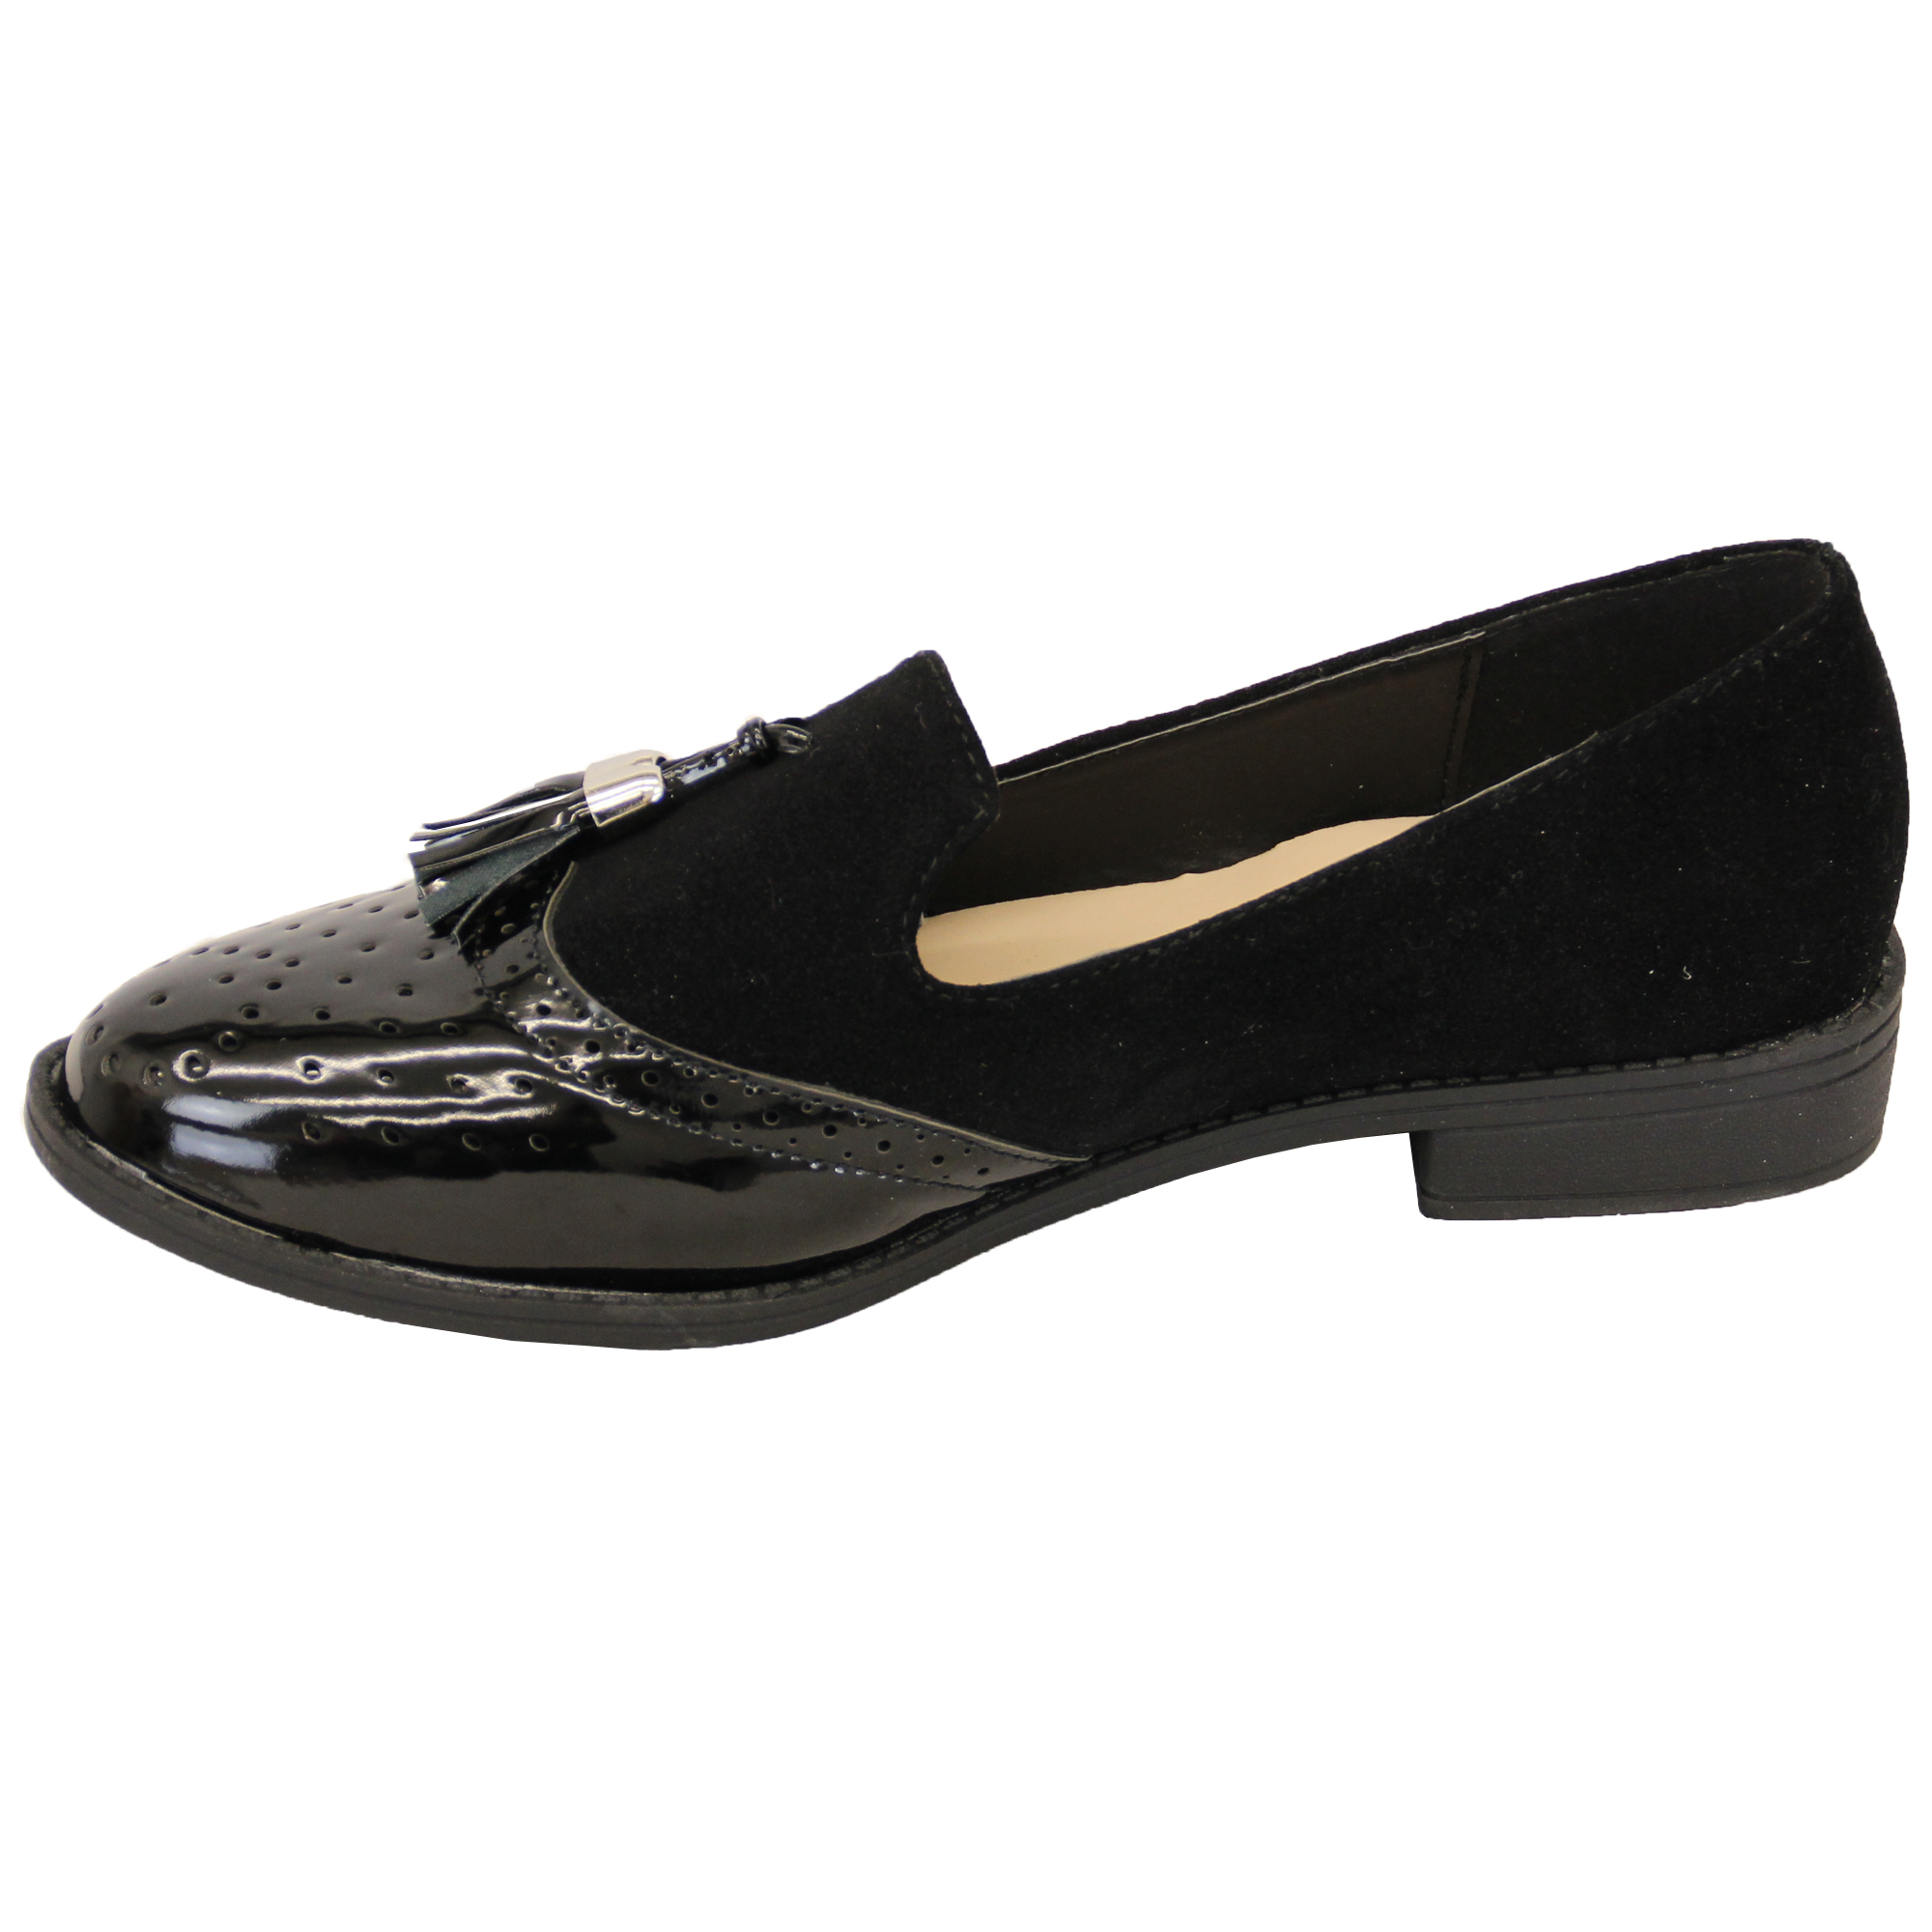 Suede Womens Penny Loafers Sale: Save Up to 40% Off! Shop europegamexma.gq's huge selection of Suede Penny Loafers for Women - Over 15 styles available. FREE .